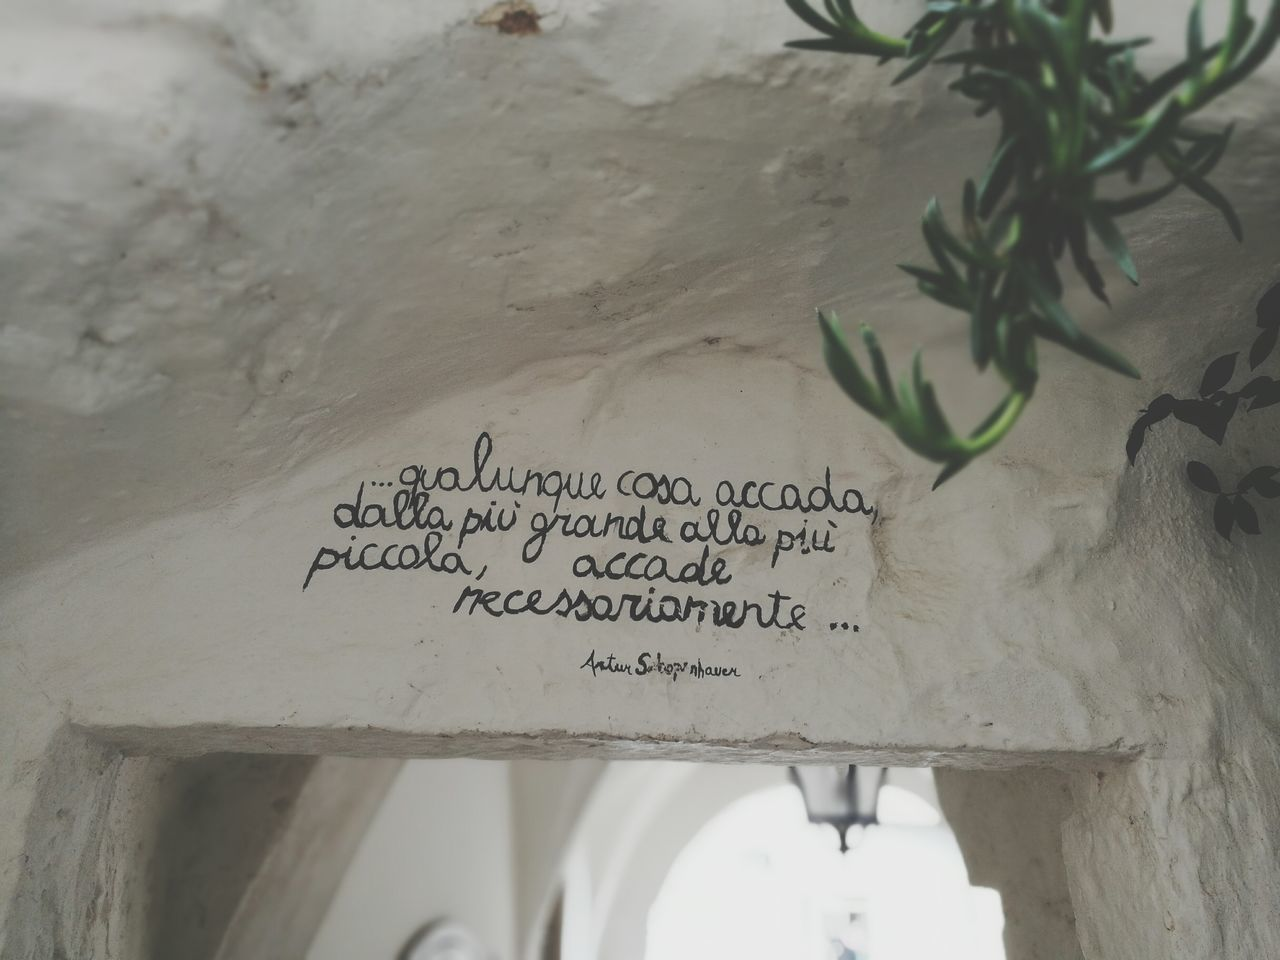 Quotes Schopenhauer Text No People Close-up Outdoors Day cisternino Valle D Itria Sky Building Exterior Travel Destinations Built Structure Architecture Travel Life In Motion Cisternino